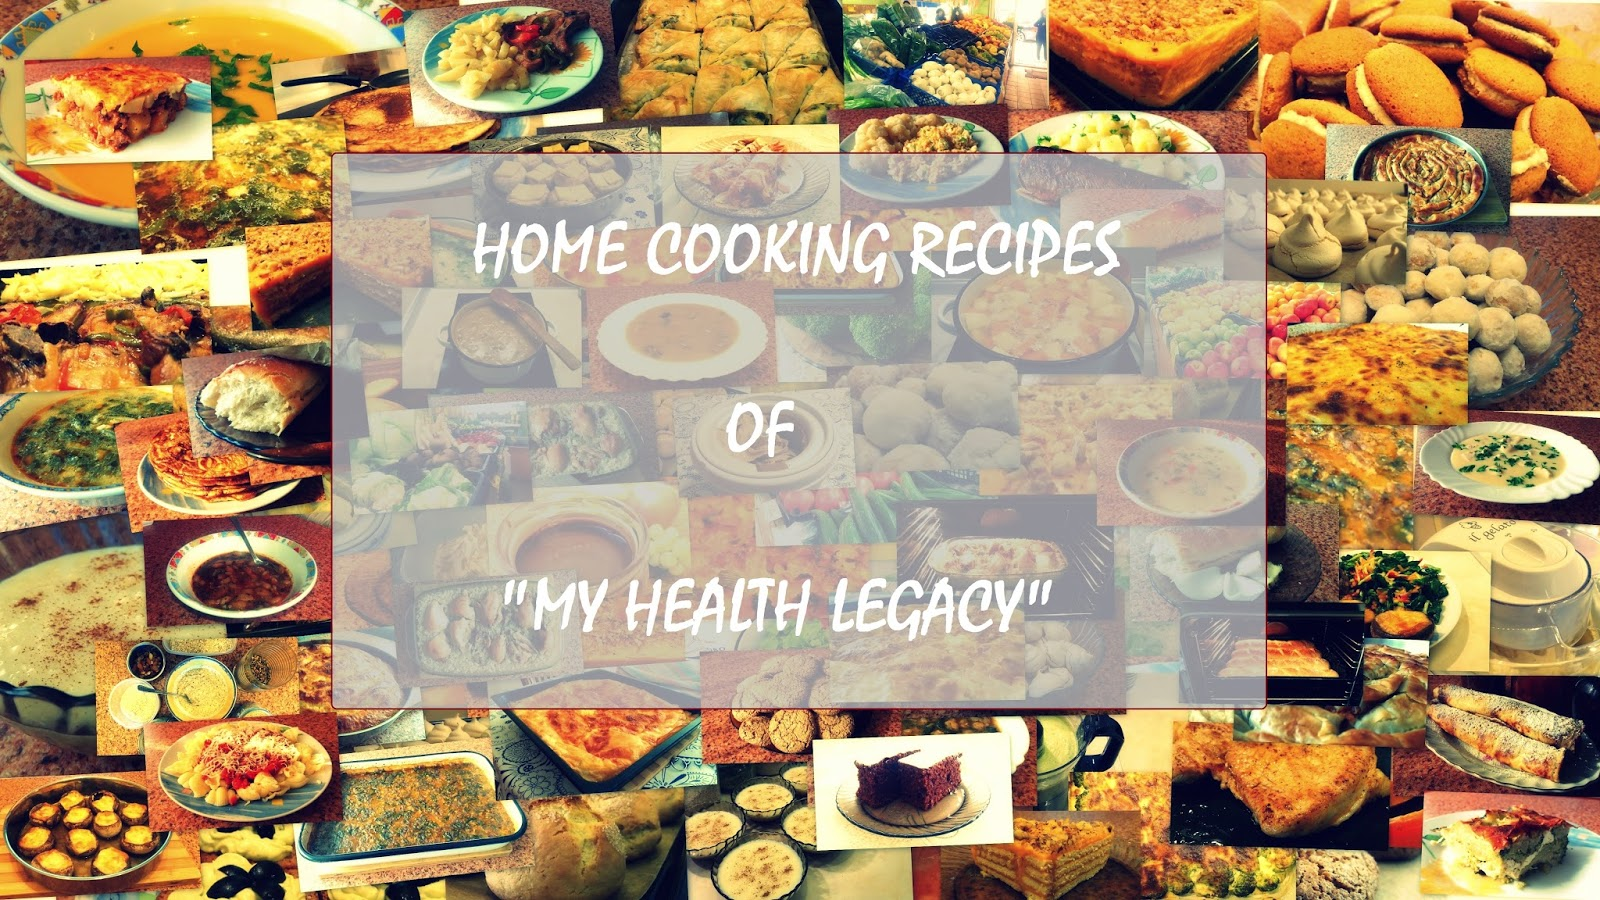 HOME COOKING RECIPES OF MY HEALTH LEGACY